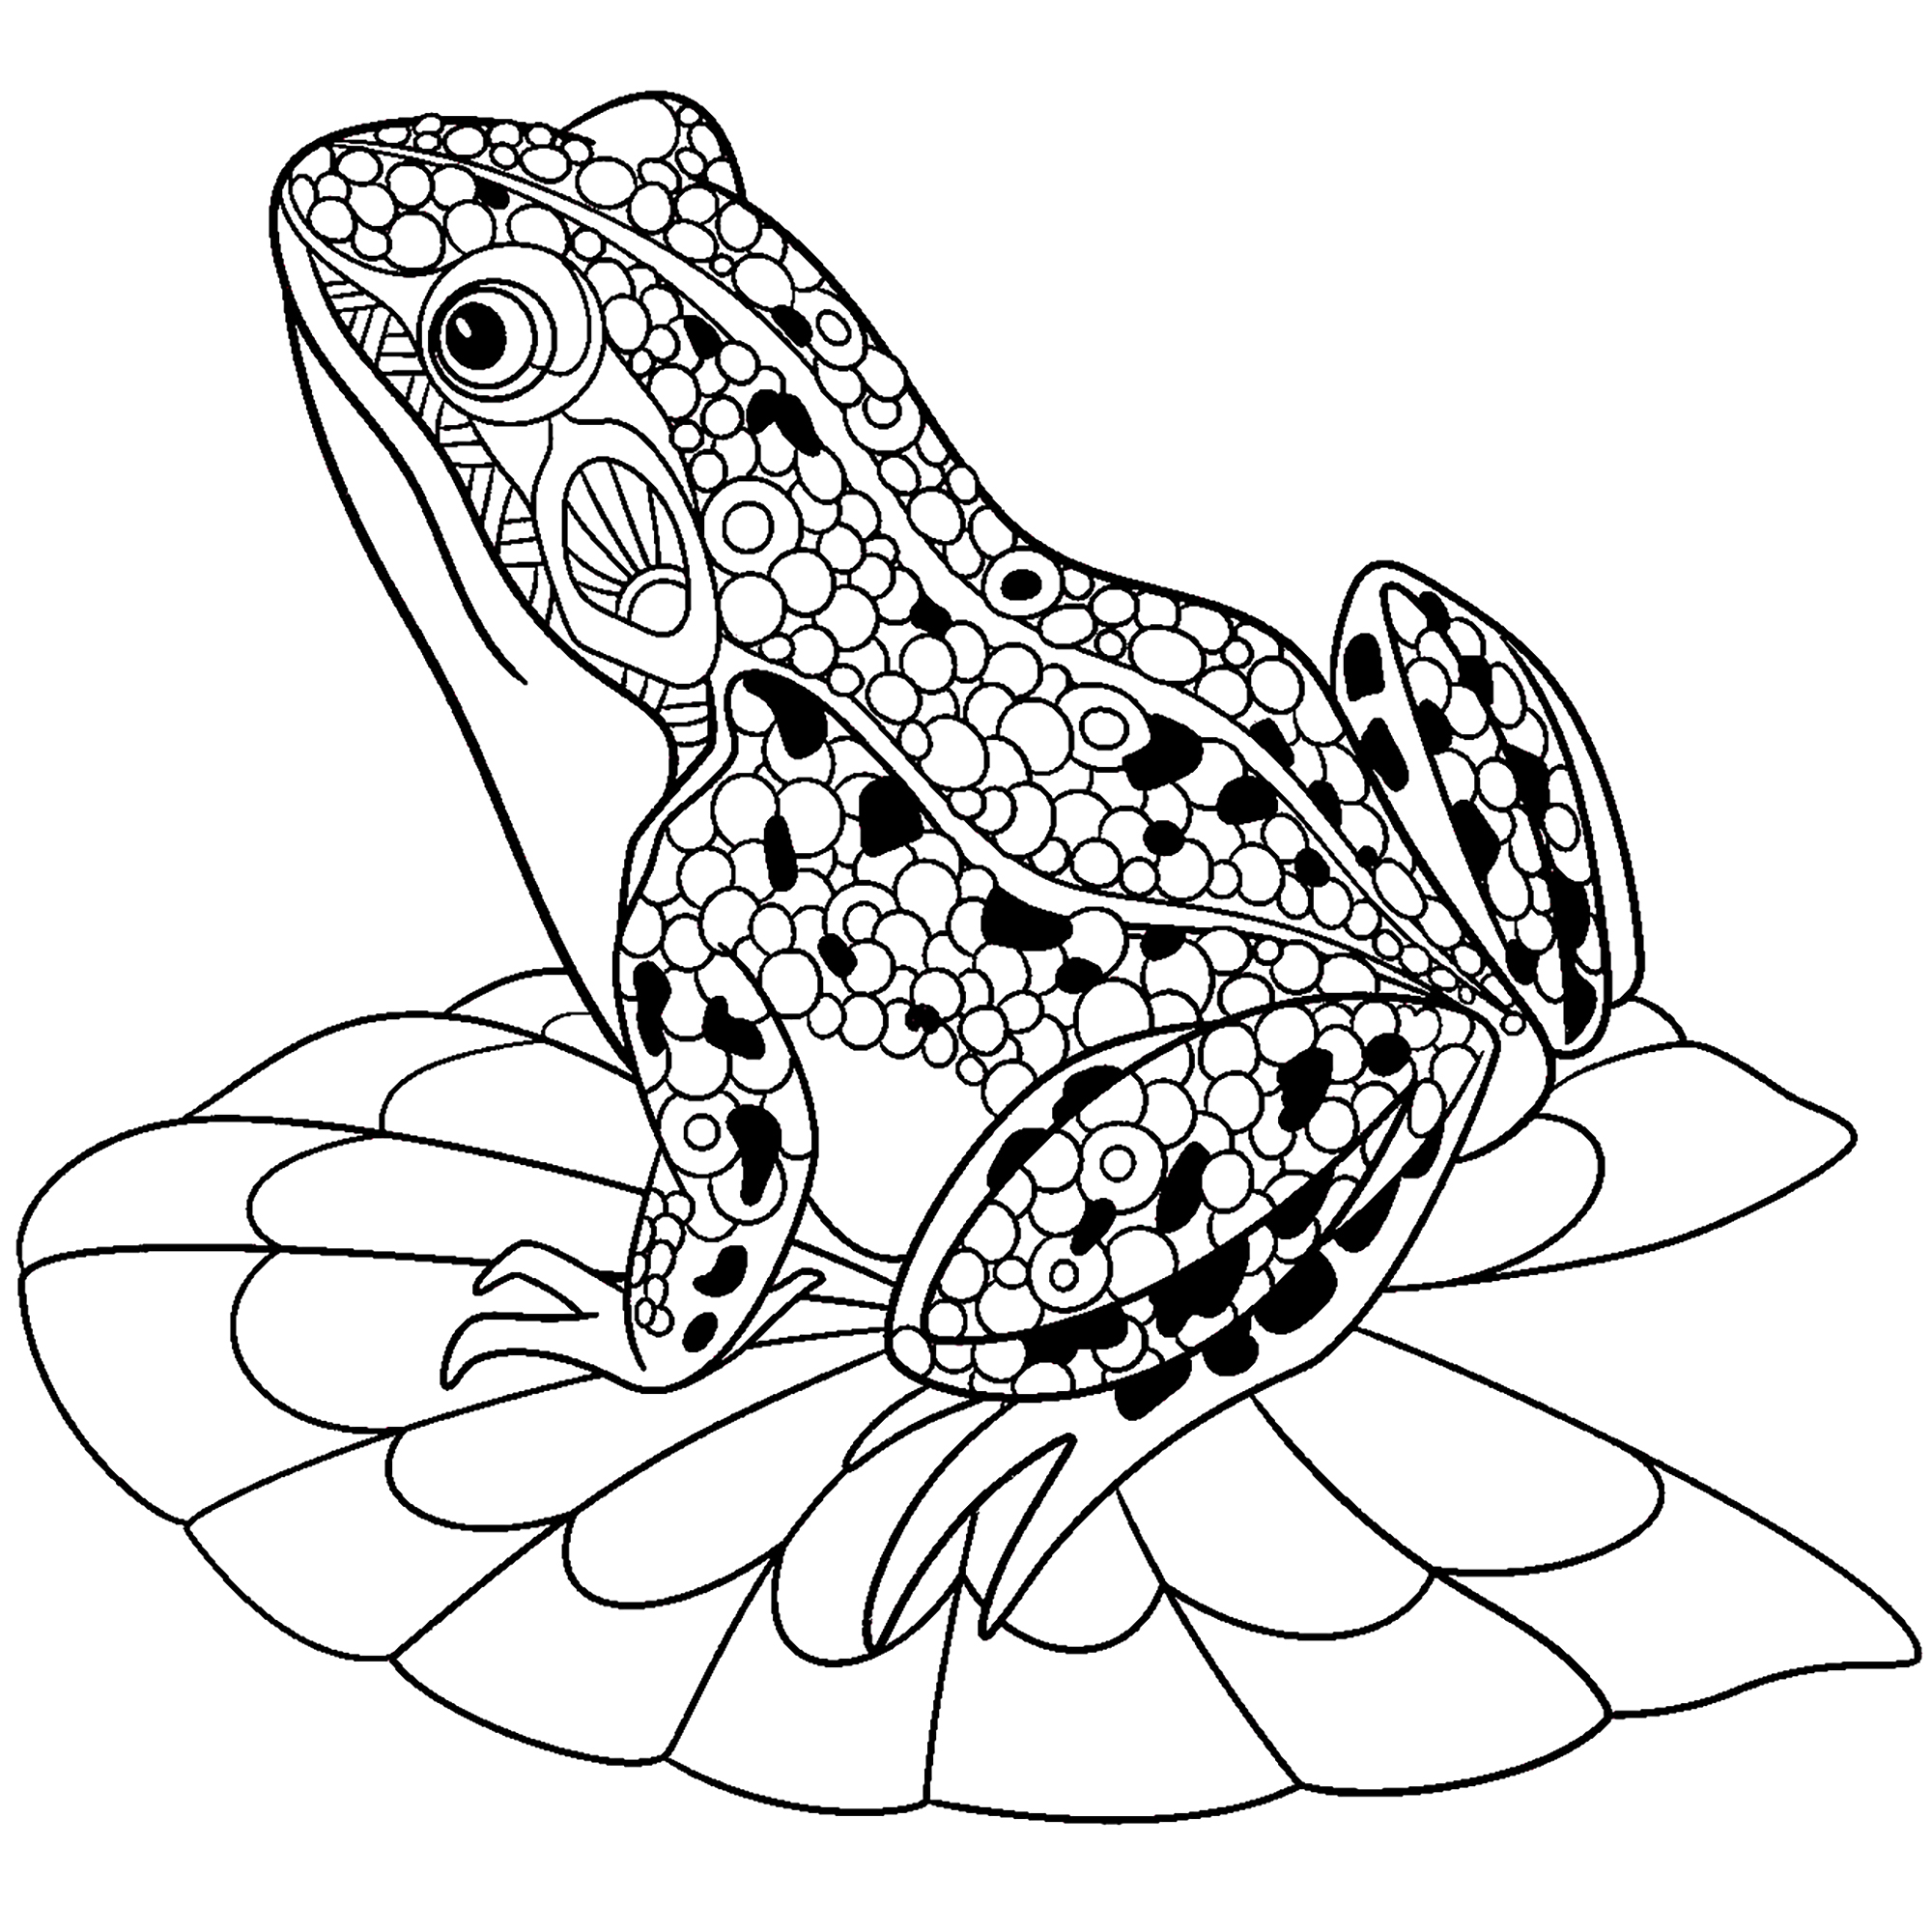 dark frog coloring pages - photo#23